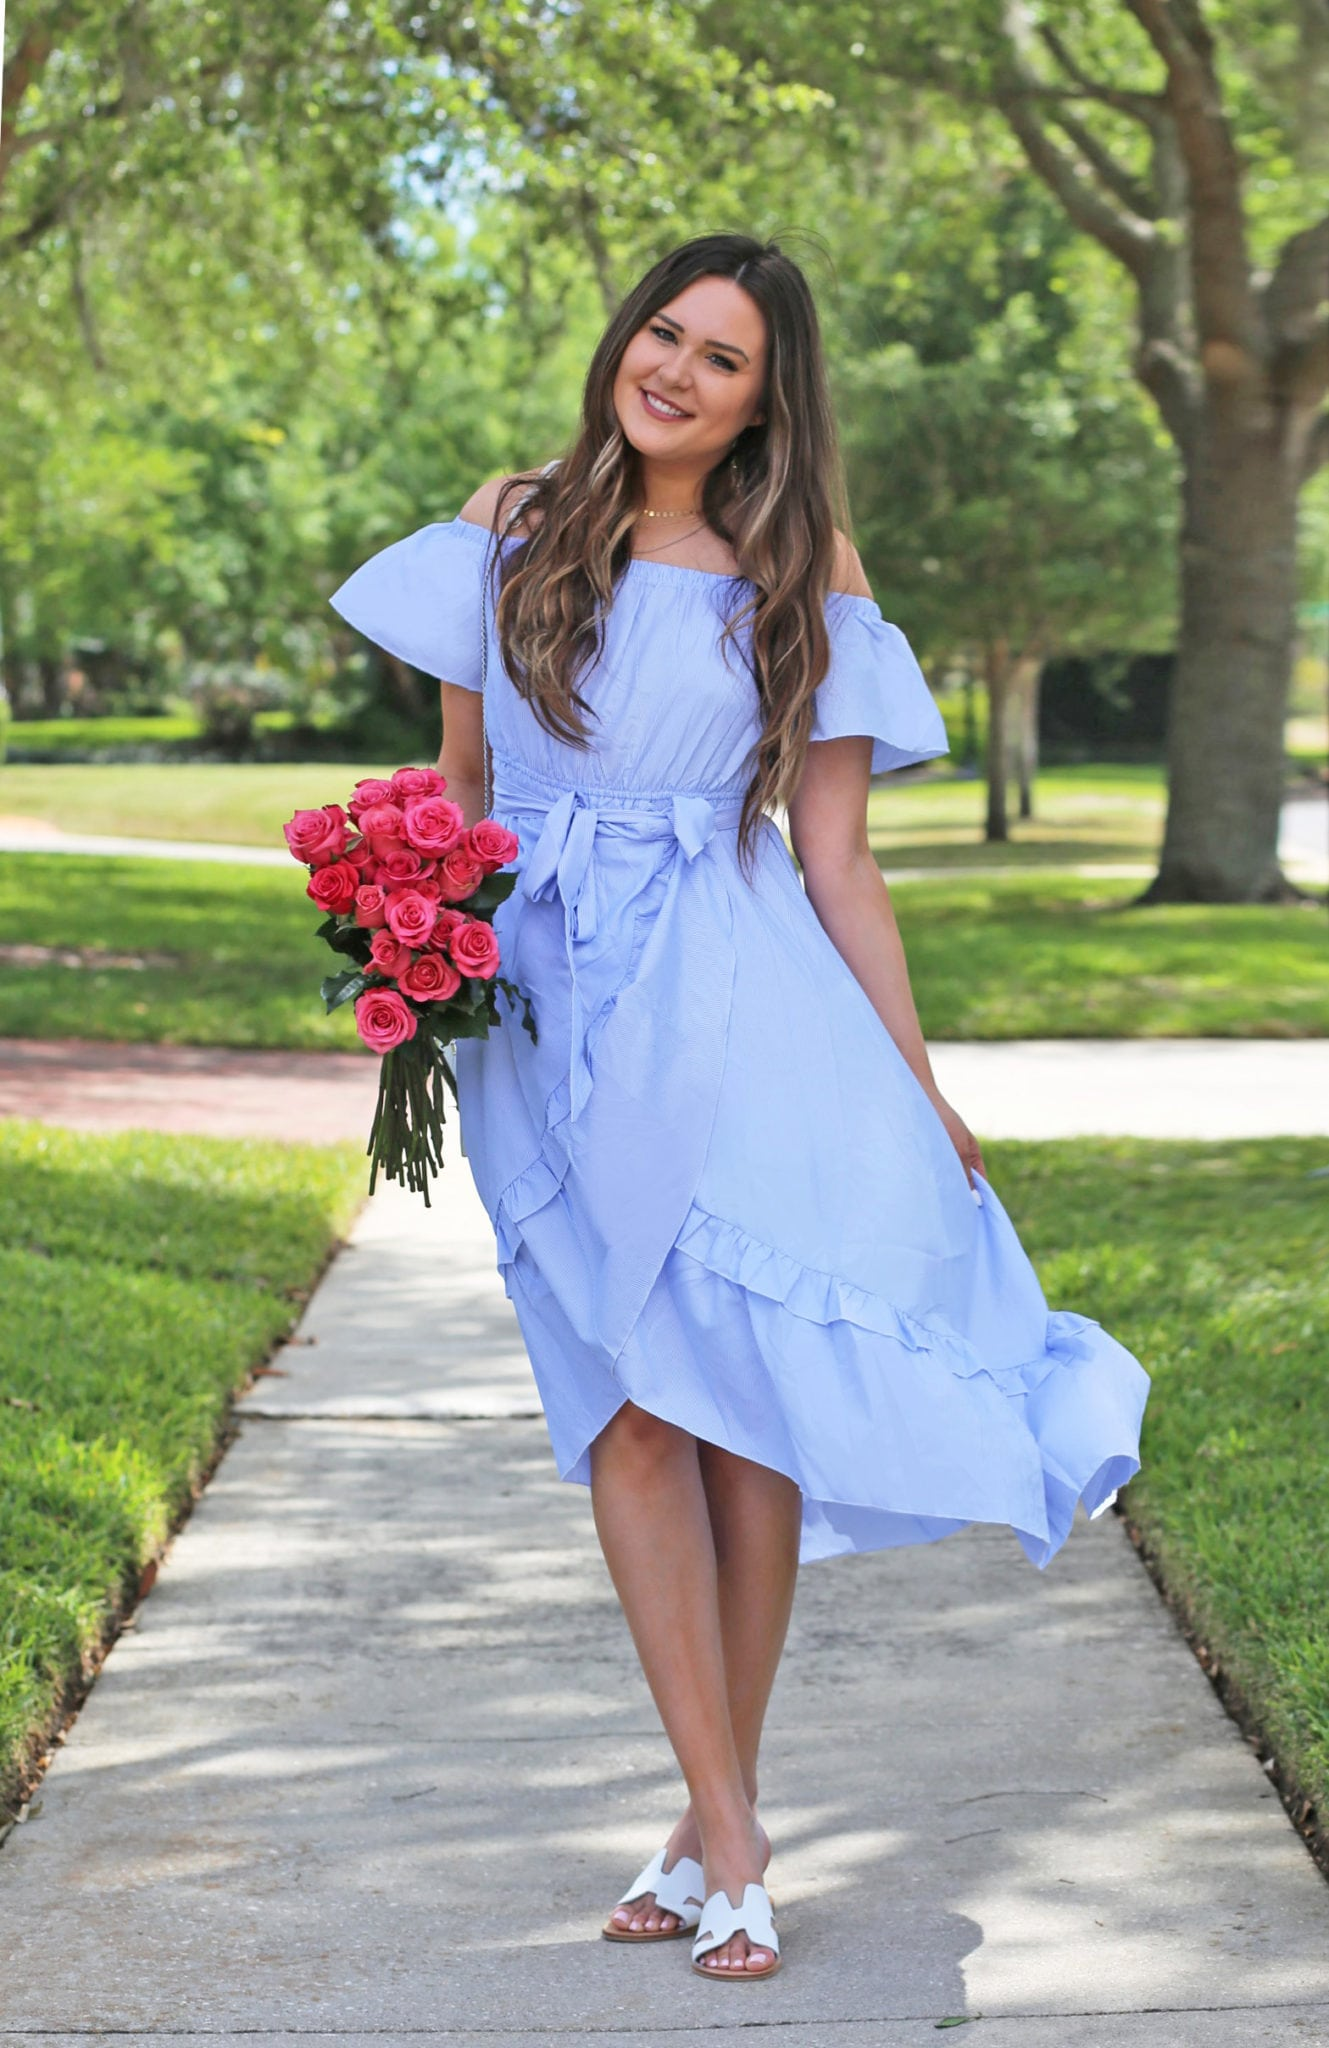 Mash Elle beauty blogger sweet spring dress blue pink roses park spring time